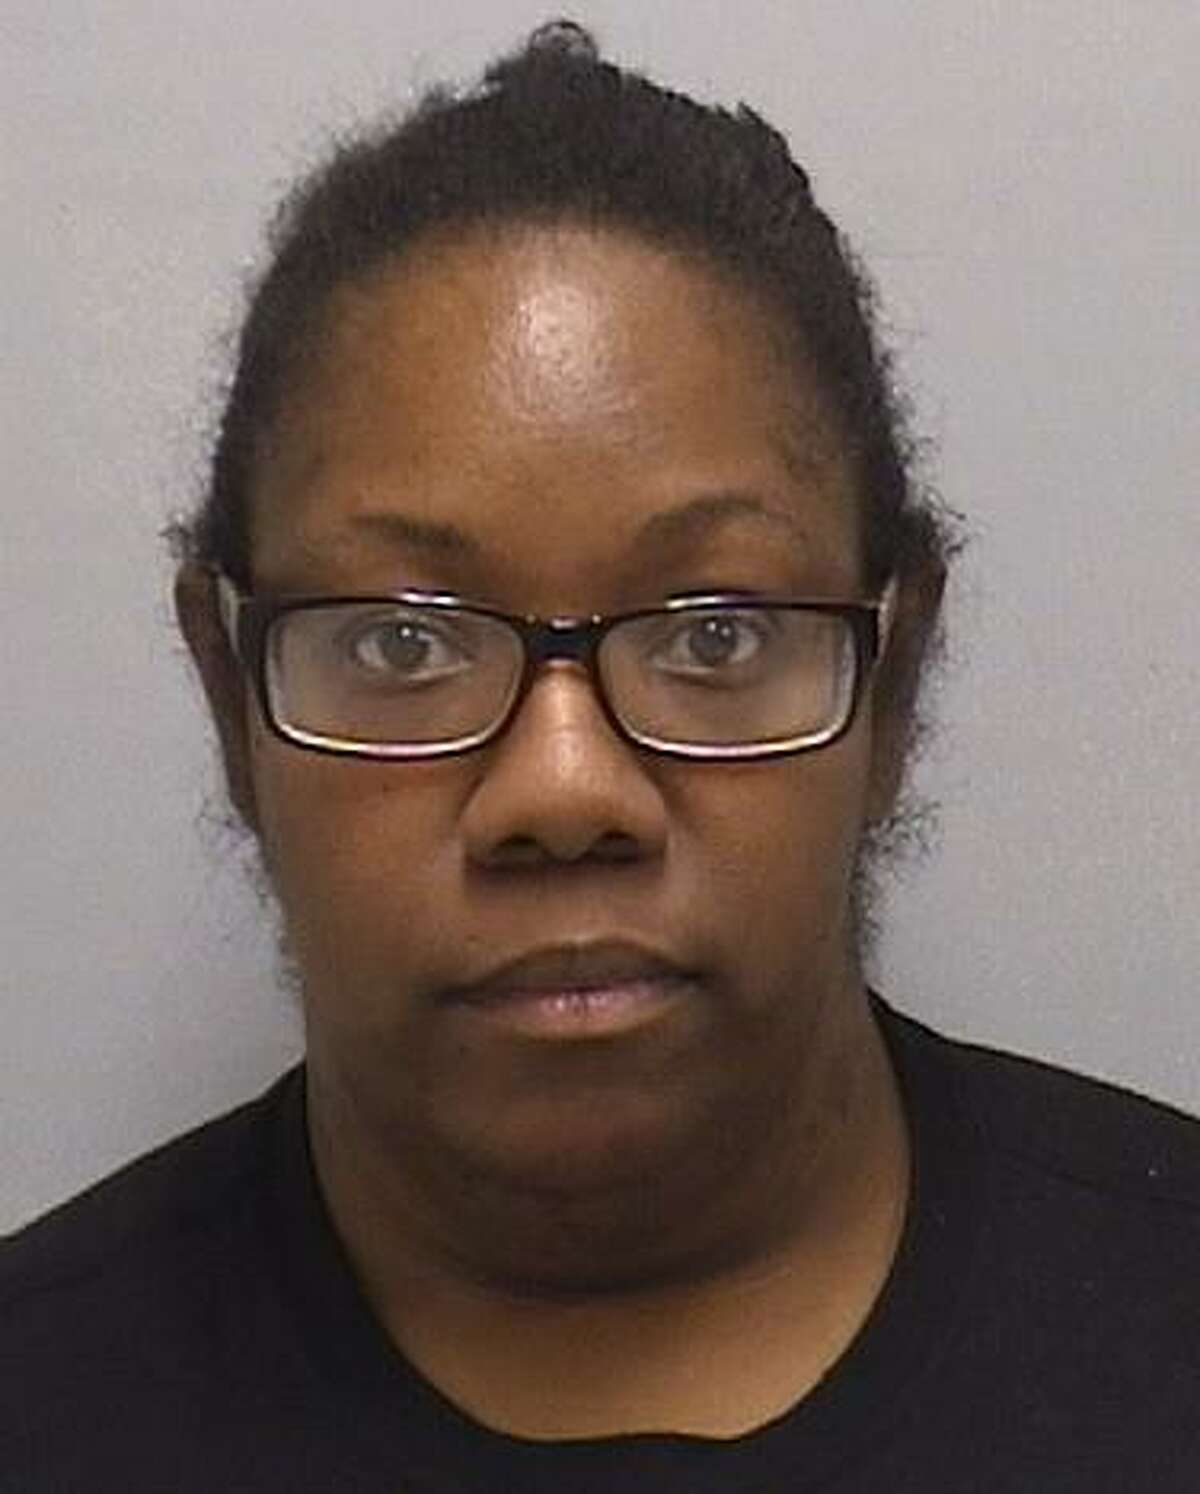 Catrina D. Oliver, 35, of West Haven, turned herself in to Orange Police Sept. 11, 2019 on a warrant for larceny charges linked to an August incident at a local ShopRite.